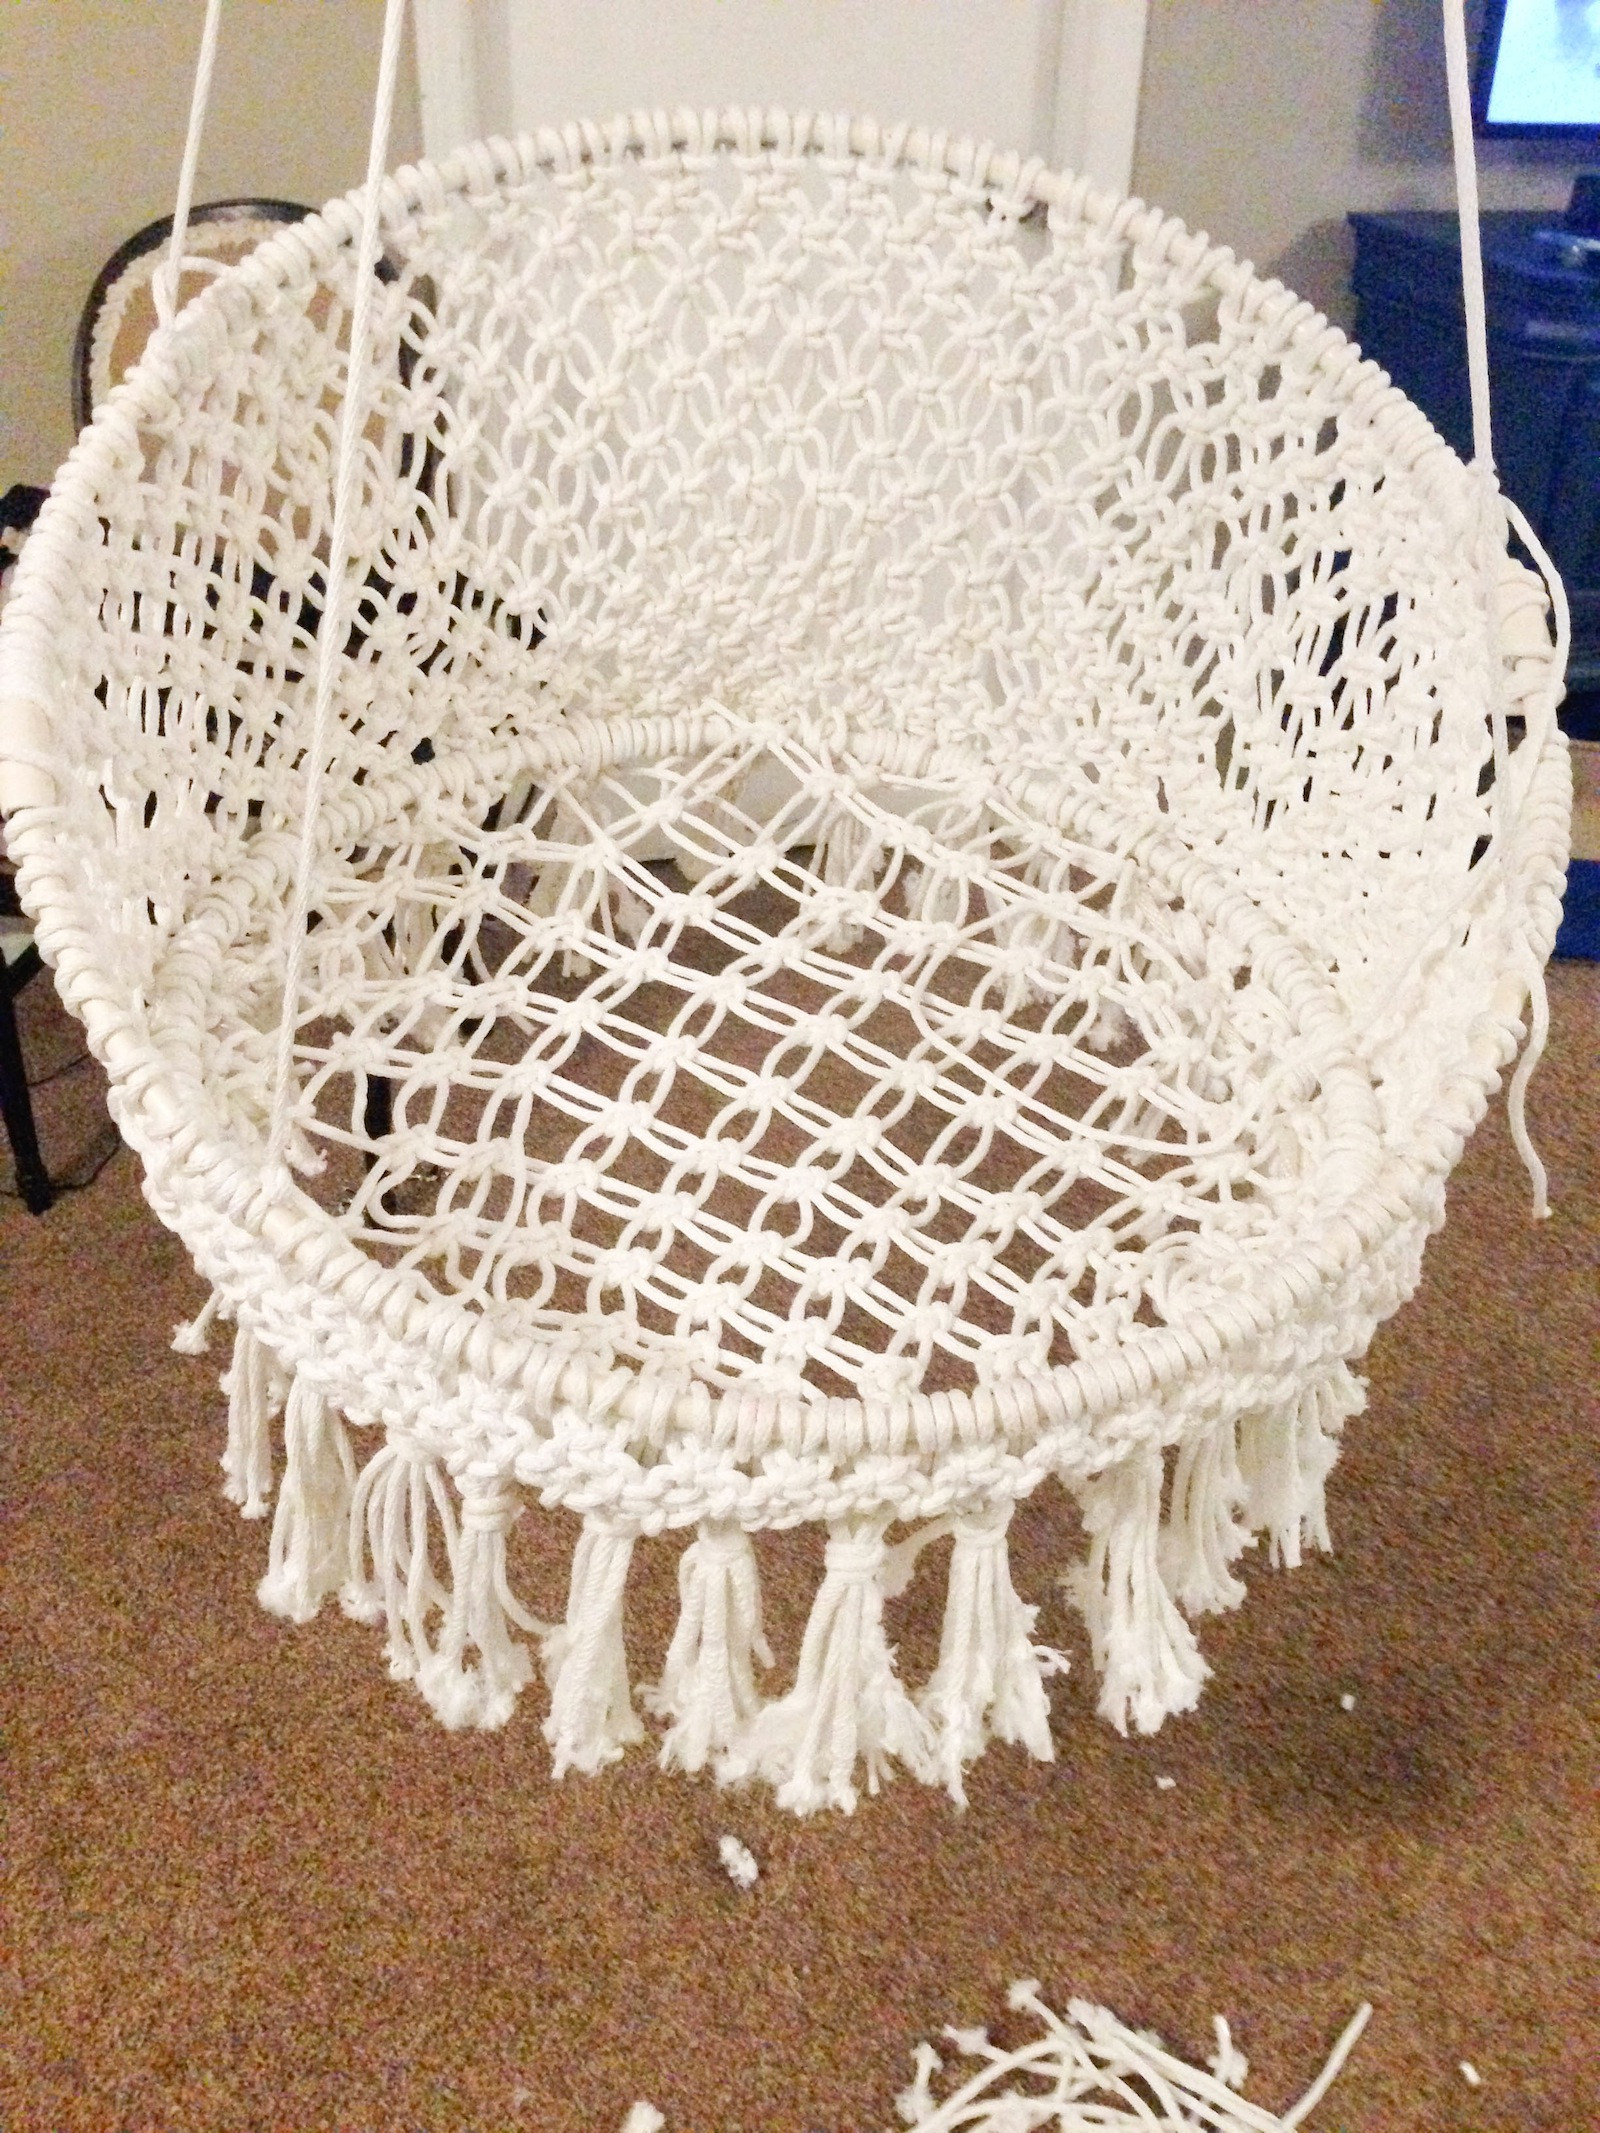 Best ideas about DIY Macrame Chair . Save or Pin DIY Hanging Macramé Chair Now.